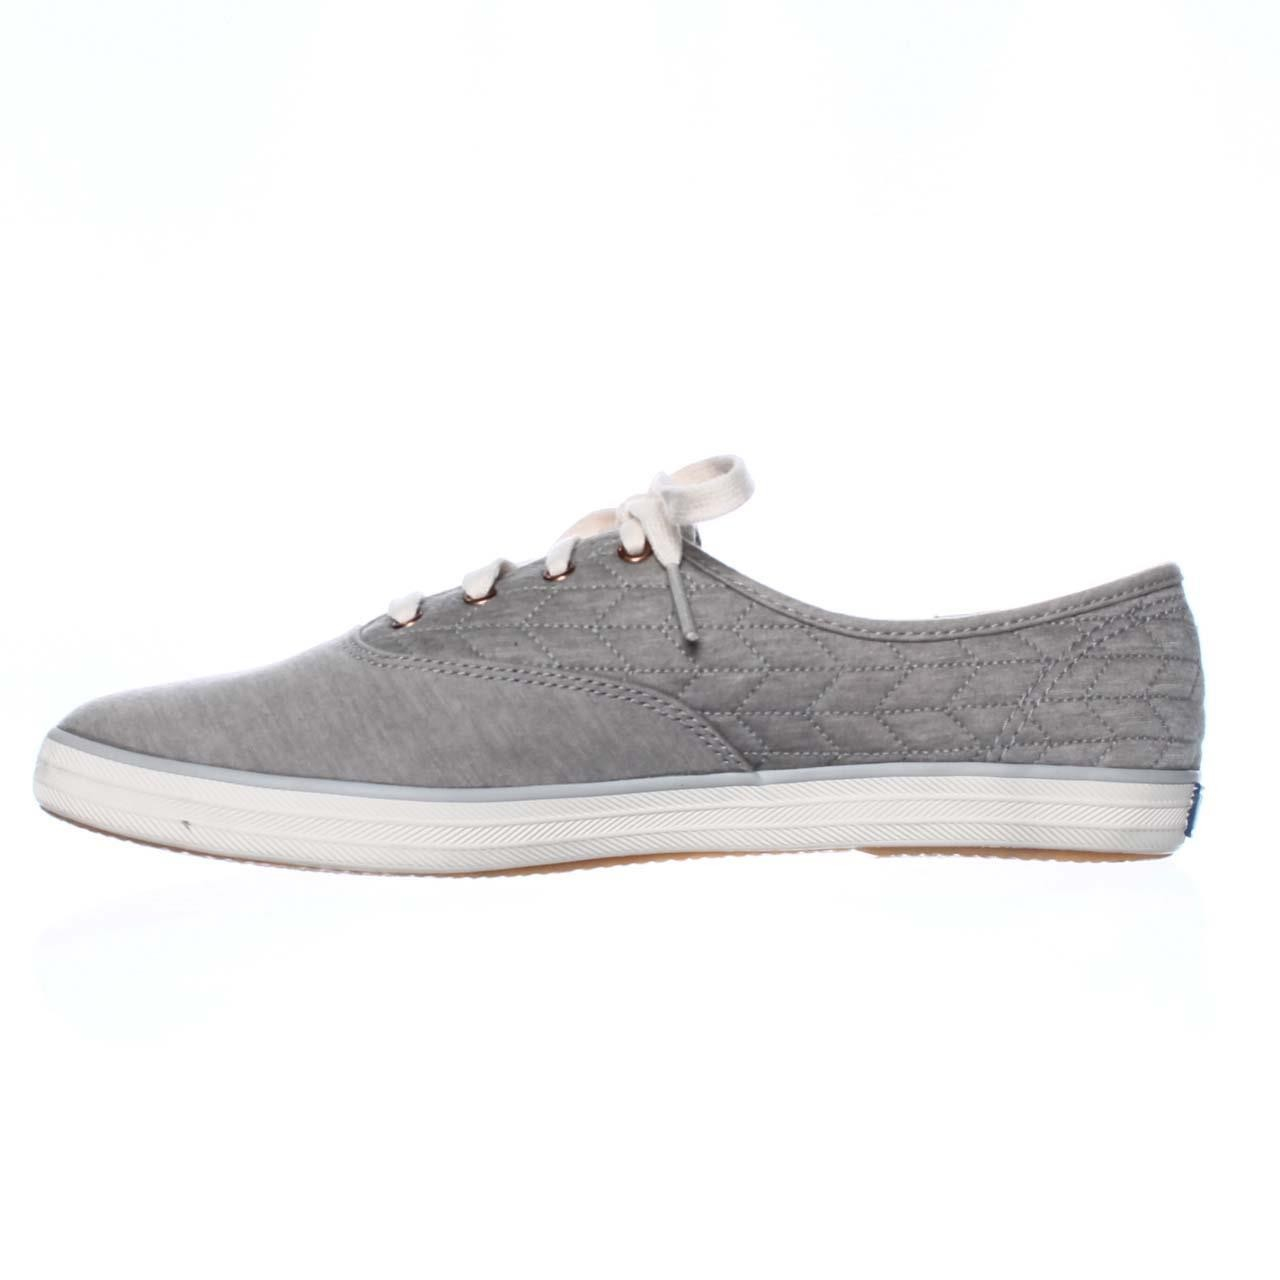 9319b0211a9e5 Lyst - Keds Champion Quilt Jersey Fashion Sneakers in Gray